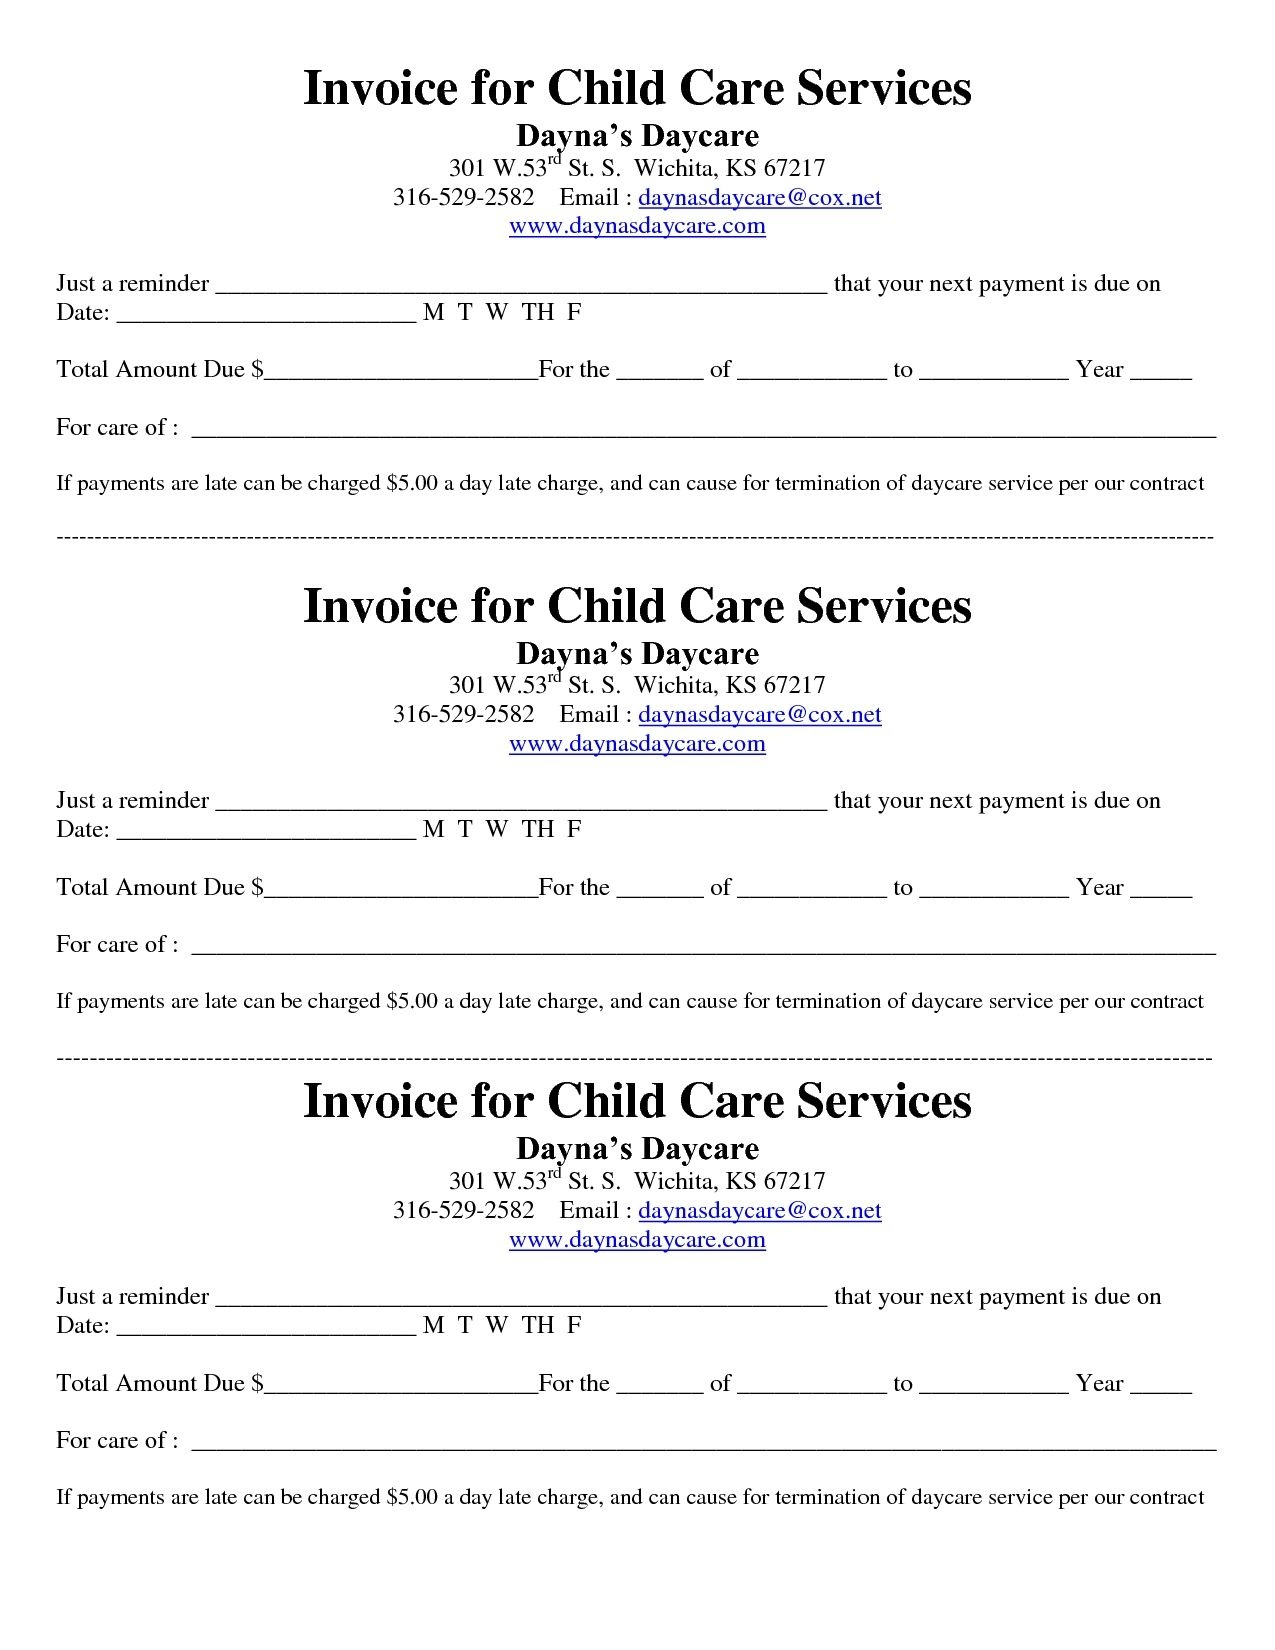 Child Care Receipt/invoice | Jordi Preschool | Invoice Template - Free Printable Daycare Receipts